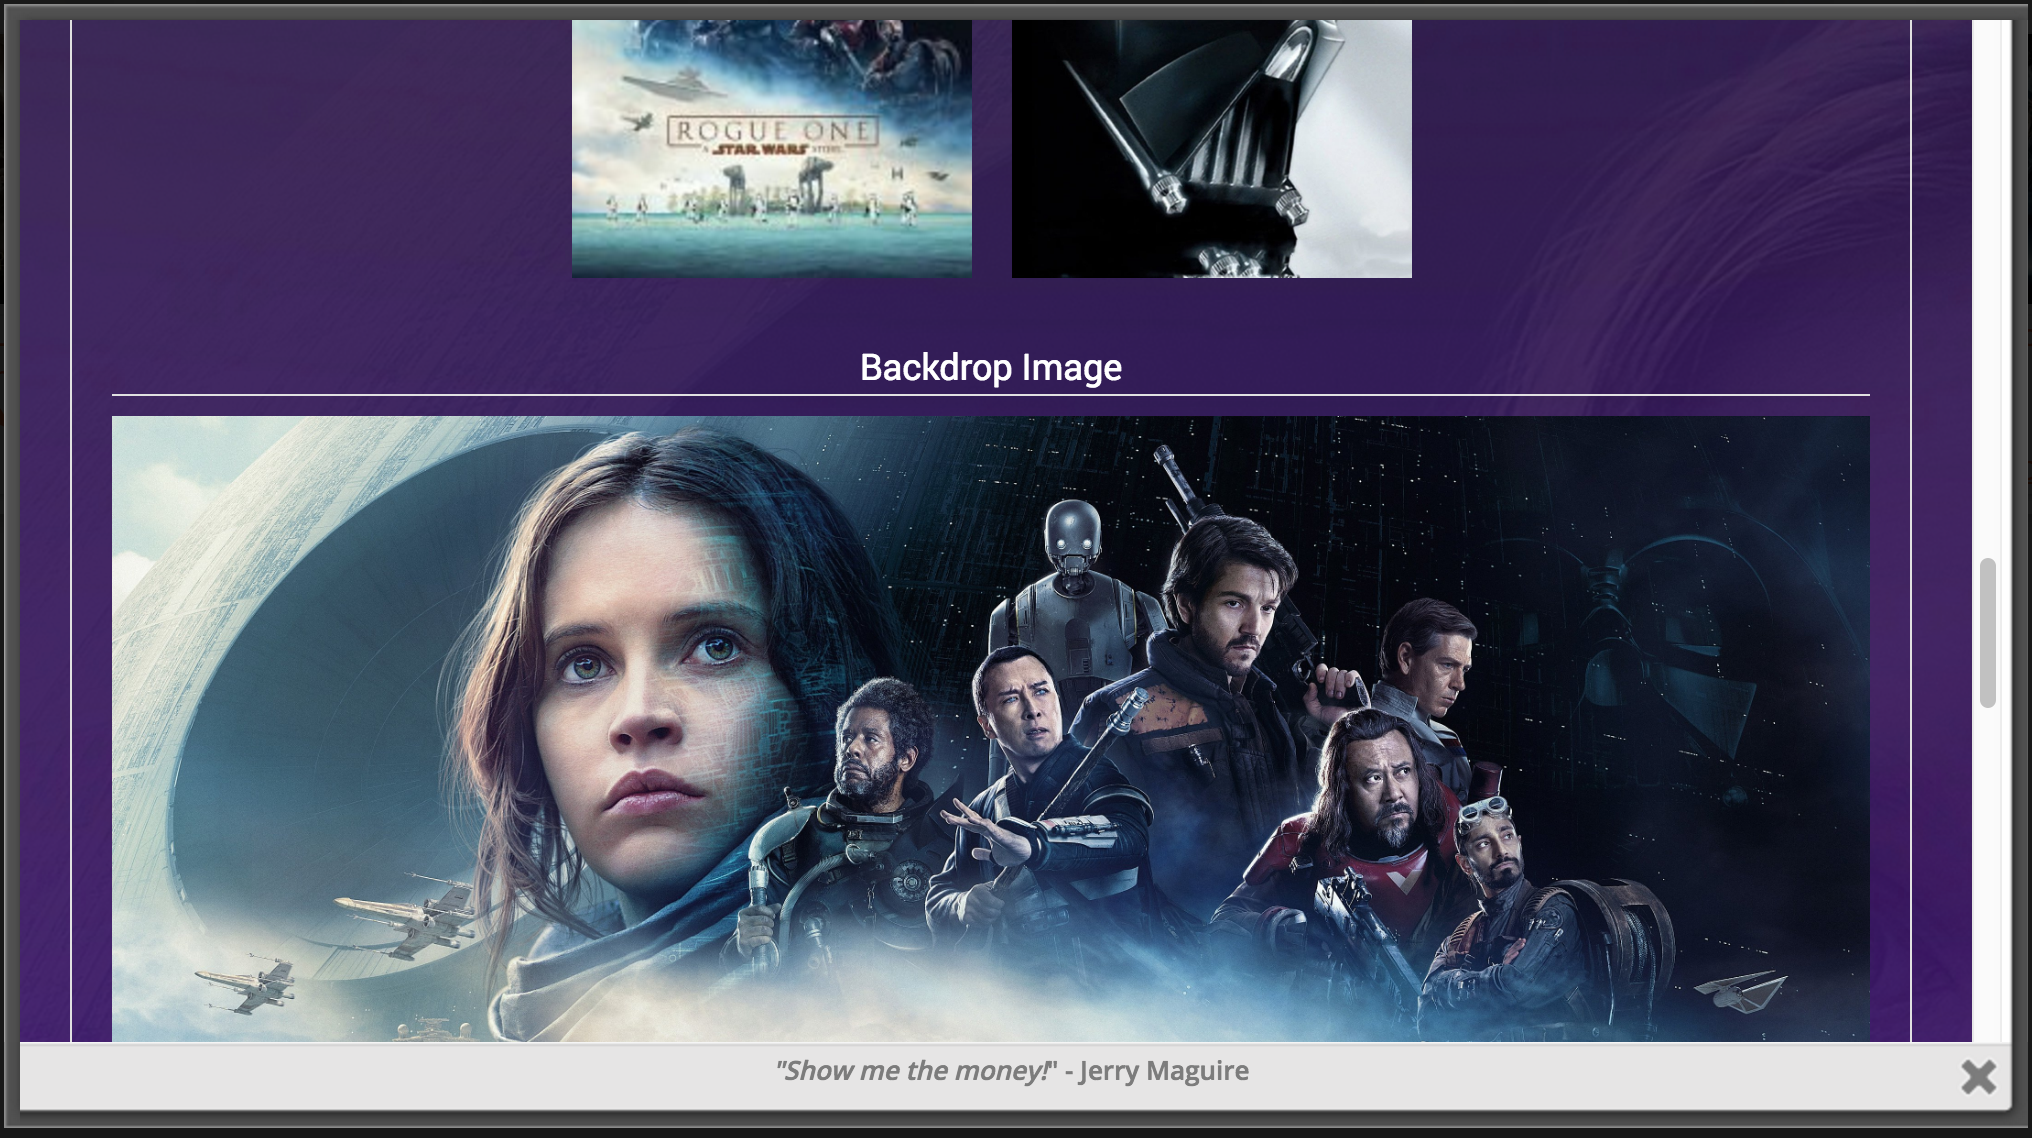 A Screenshot of the rest of the Images Section. The 'Backdrop Image' is the background image displayed behind the colored background.